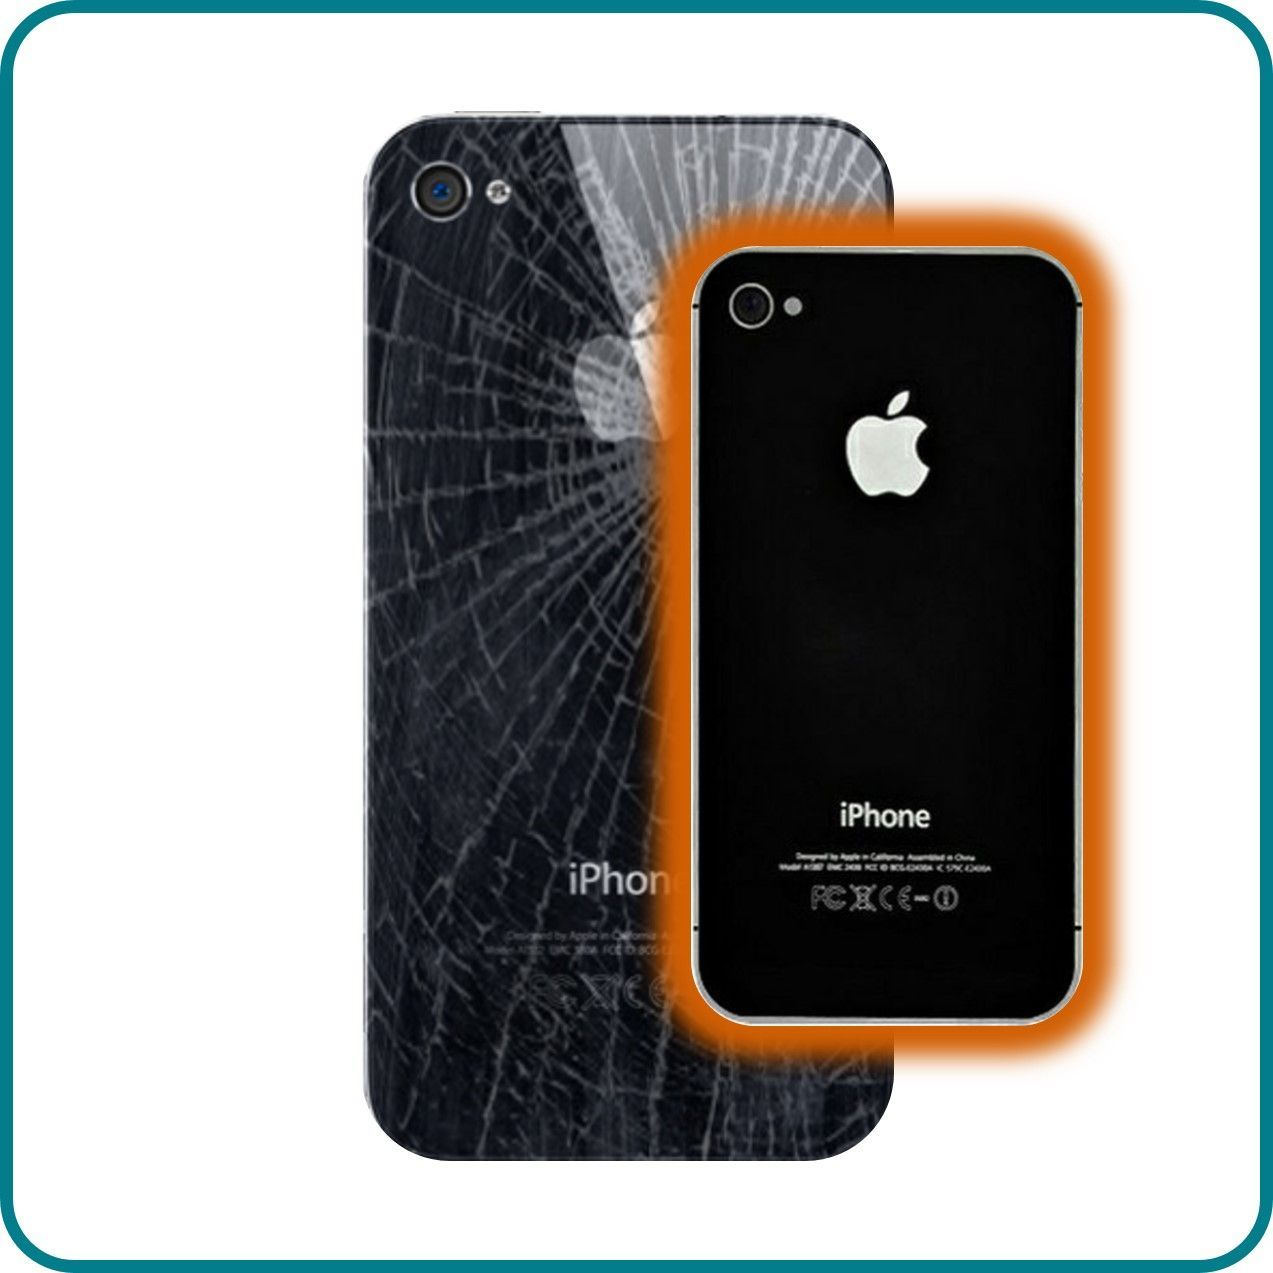 Cost to repair iphone 4 back glass